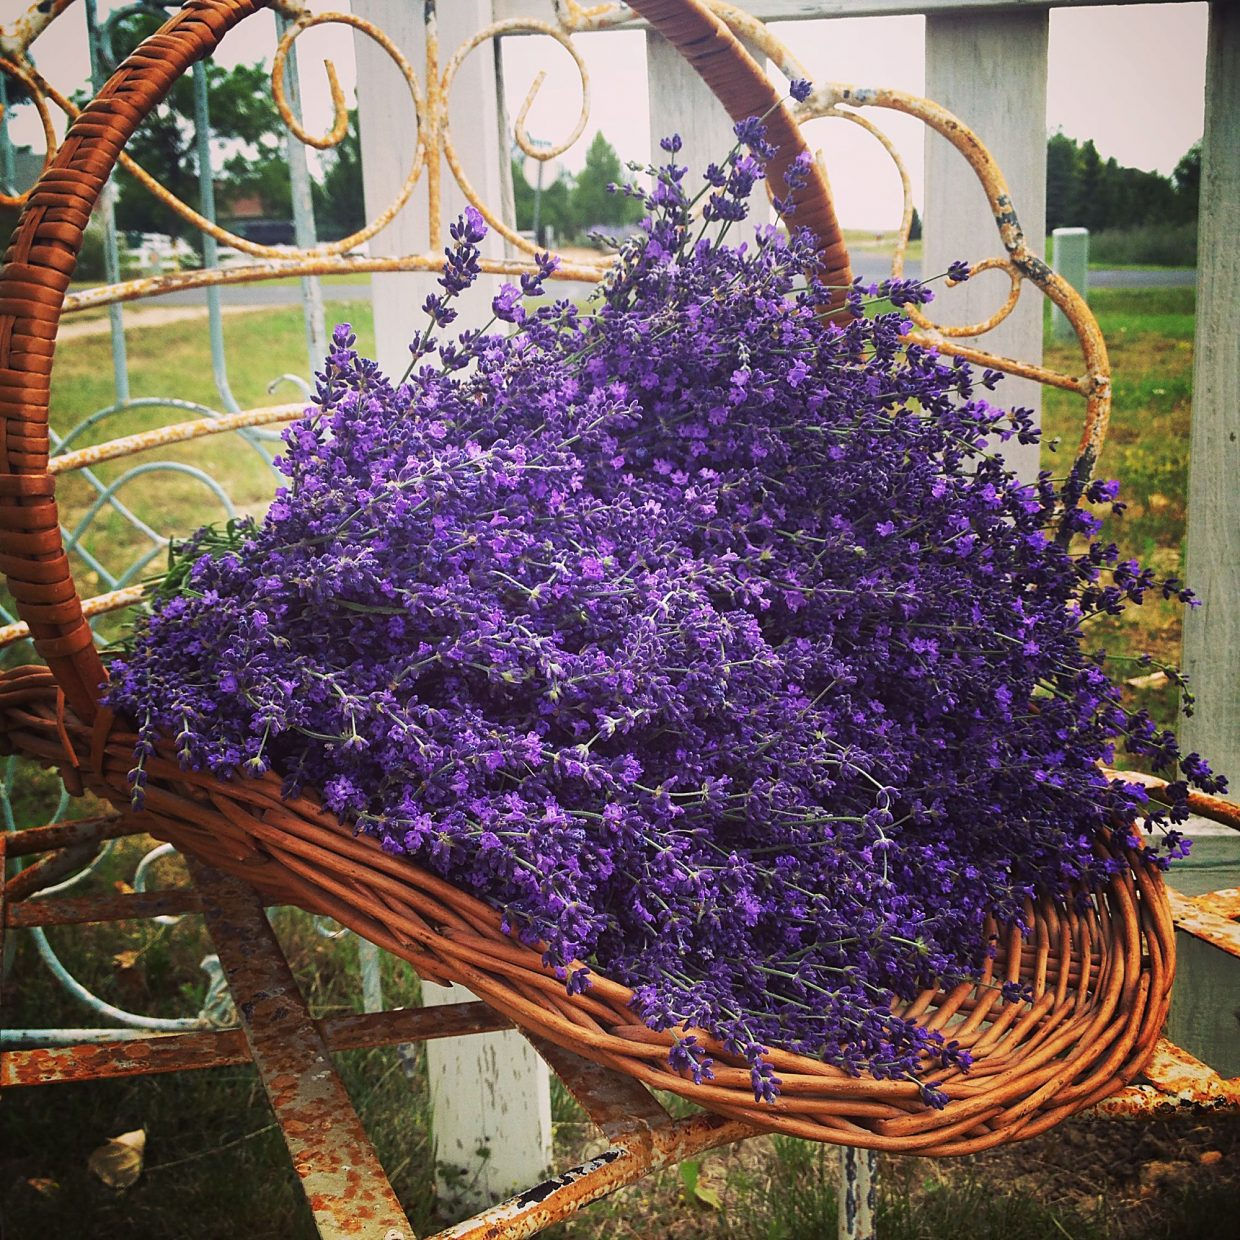 Bright purple, aromatic lavender in a basket entices browsers at festivals where the Perry family markets some of their products.